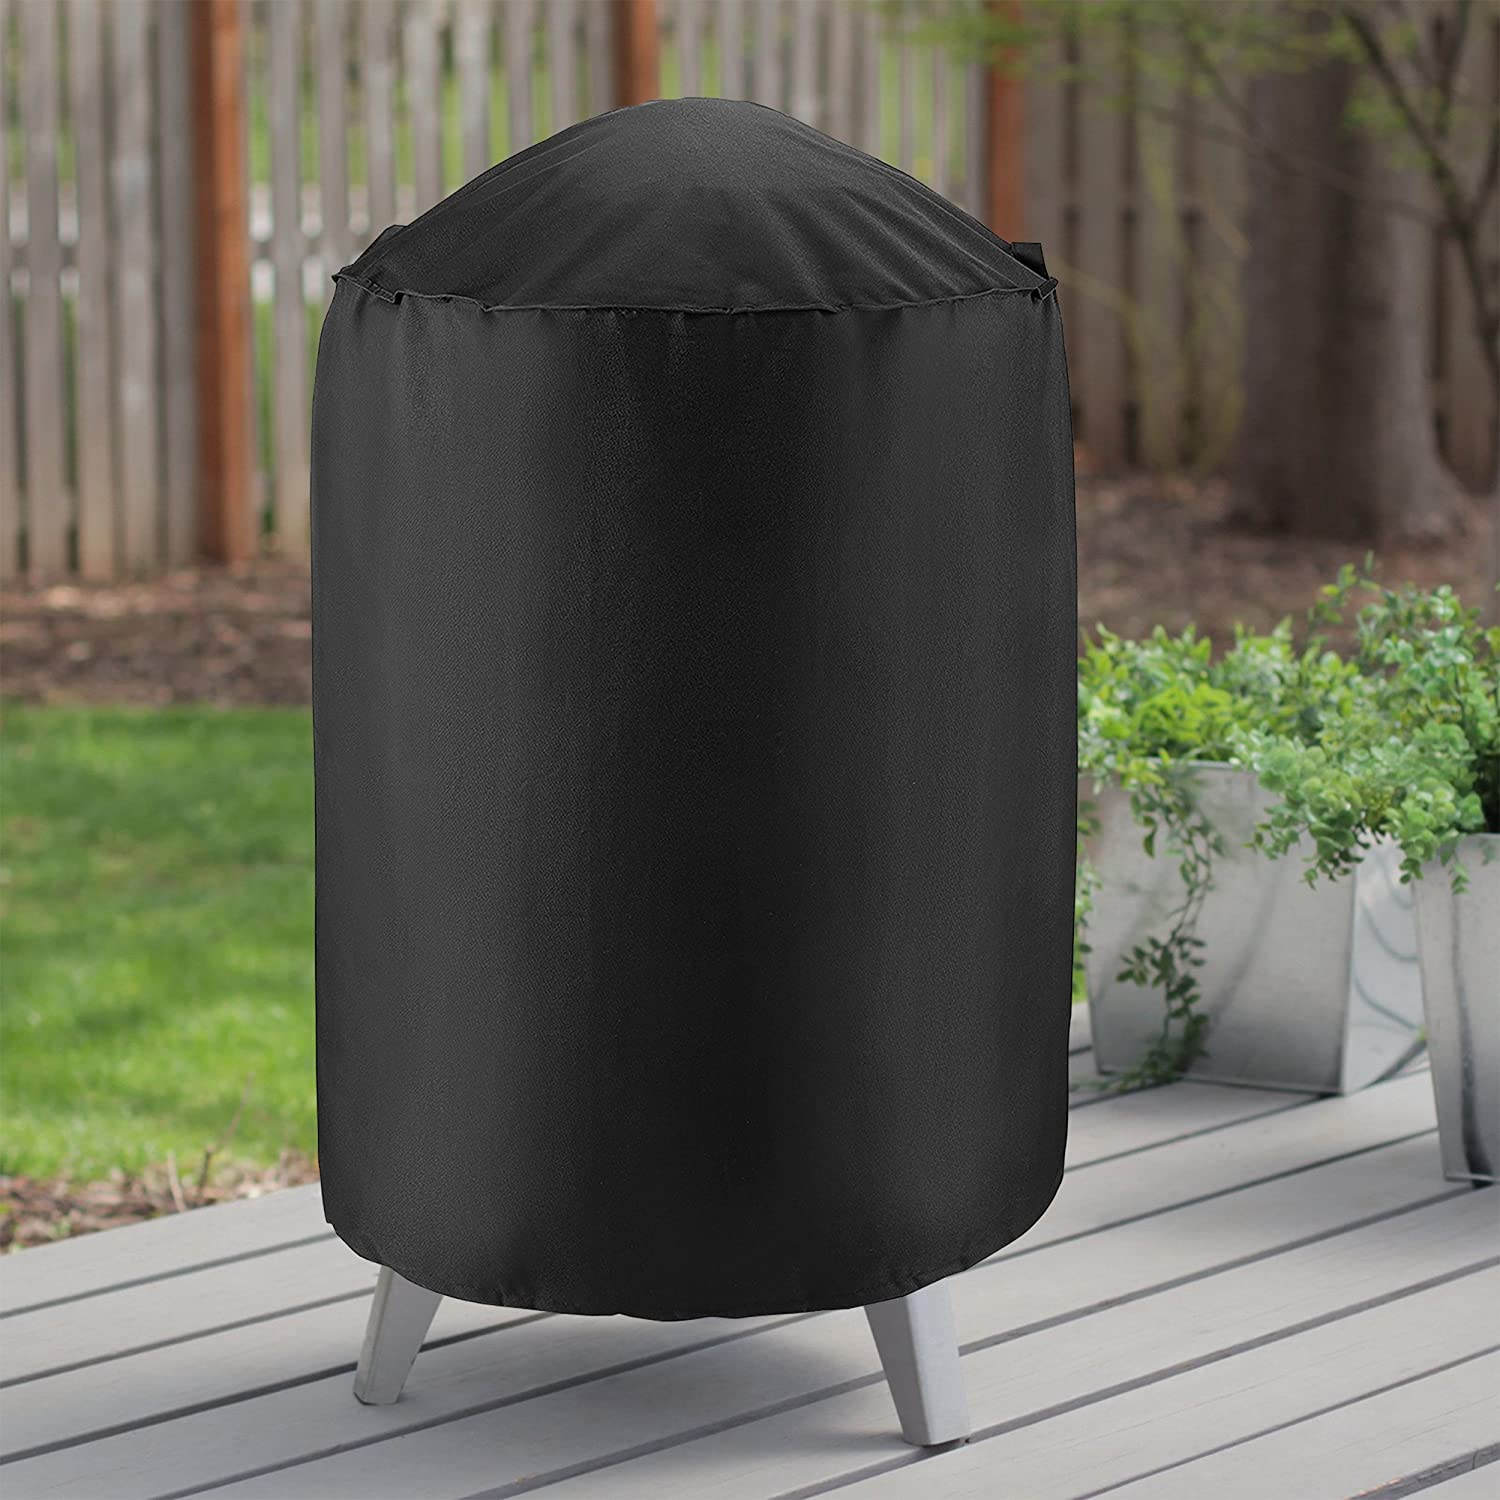 Durable and Convenient 23 Dia by 25 H Smoker Cover Fit Grill//Smoker for Weber Char-Broil and More Fade Resistant Material Charcoal Grill Cover UNICOOK Heavy Duty Waterproof Kettle Grill Cover